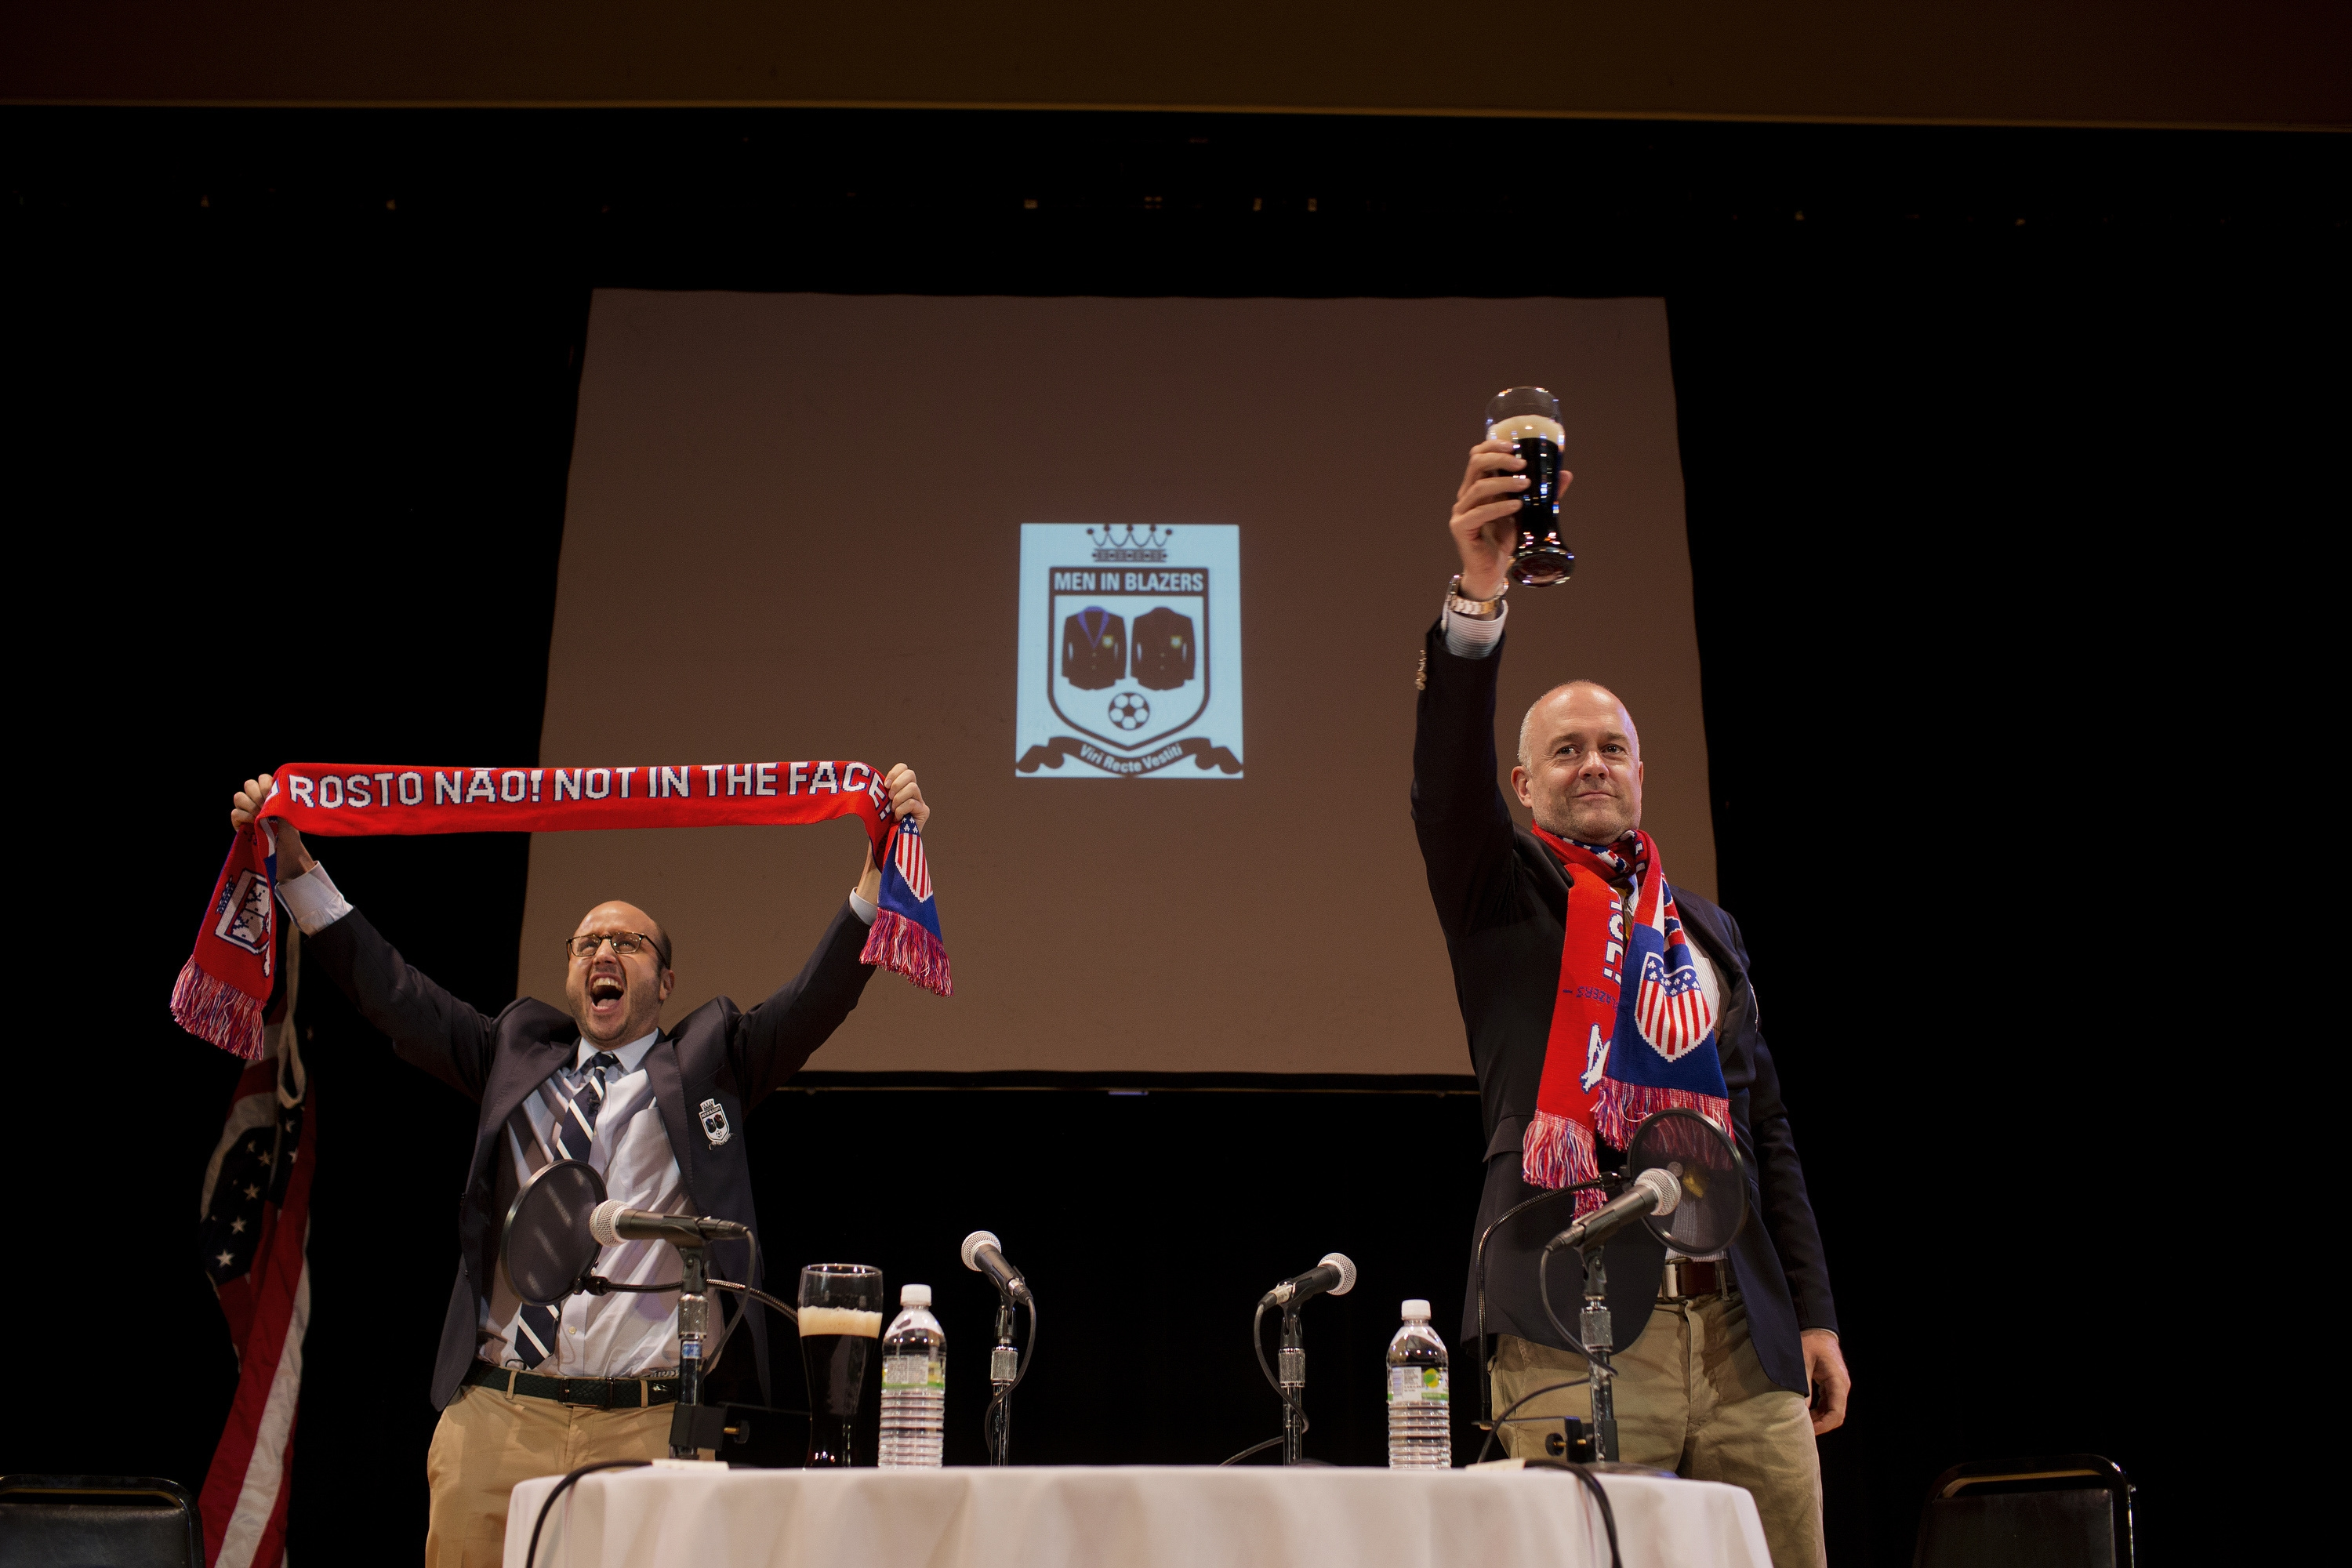 Michael Davies, right, and Roger Bennett, hosts of ESPN's 'Men in Blazers,' arrive on stage for a live show in New York, May 30, 2014. The soccer podcast hosts have taken their amusing riffing mainstream now that the World Cup is dominating the U.S. sports conversation. (Victor J. Blue/The New York Times)